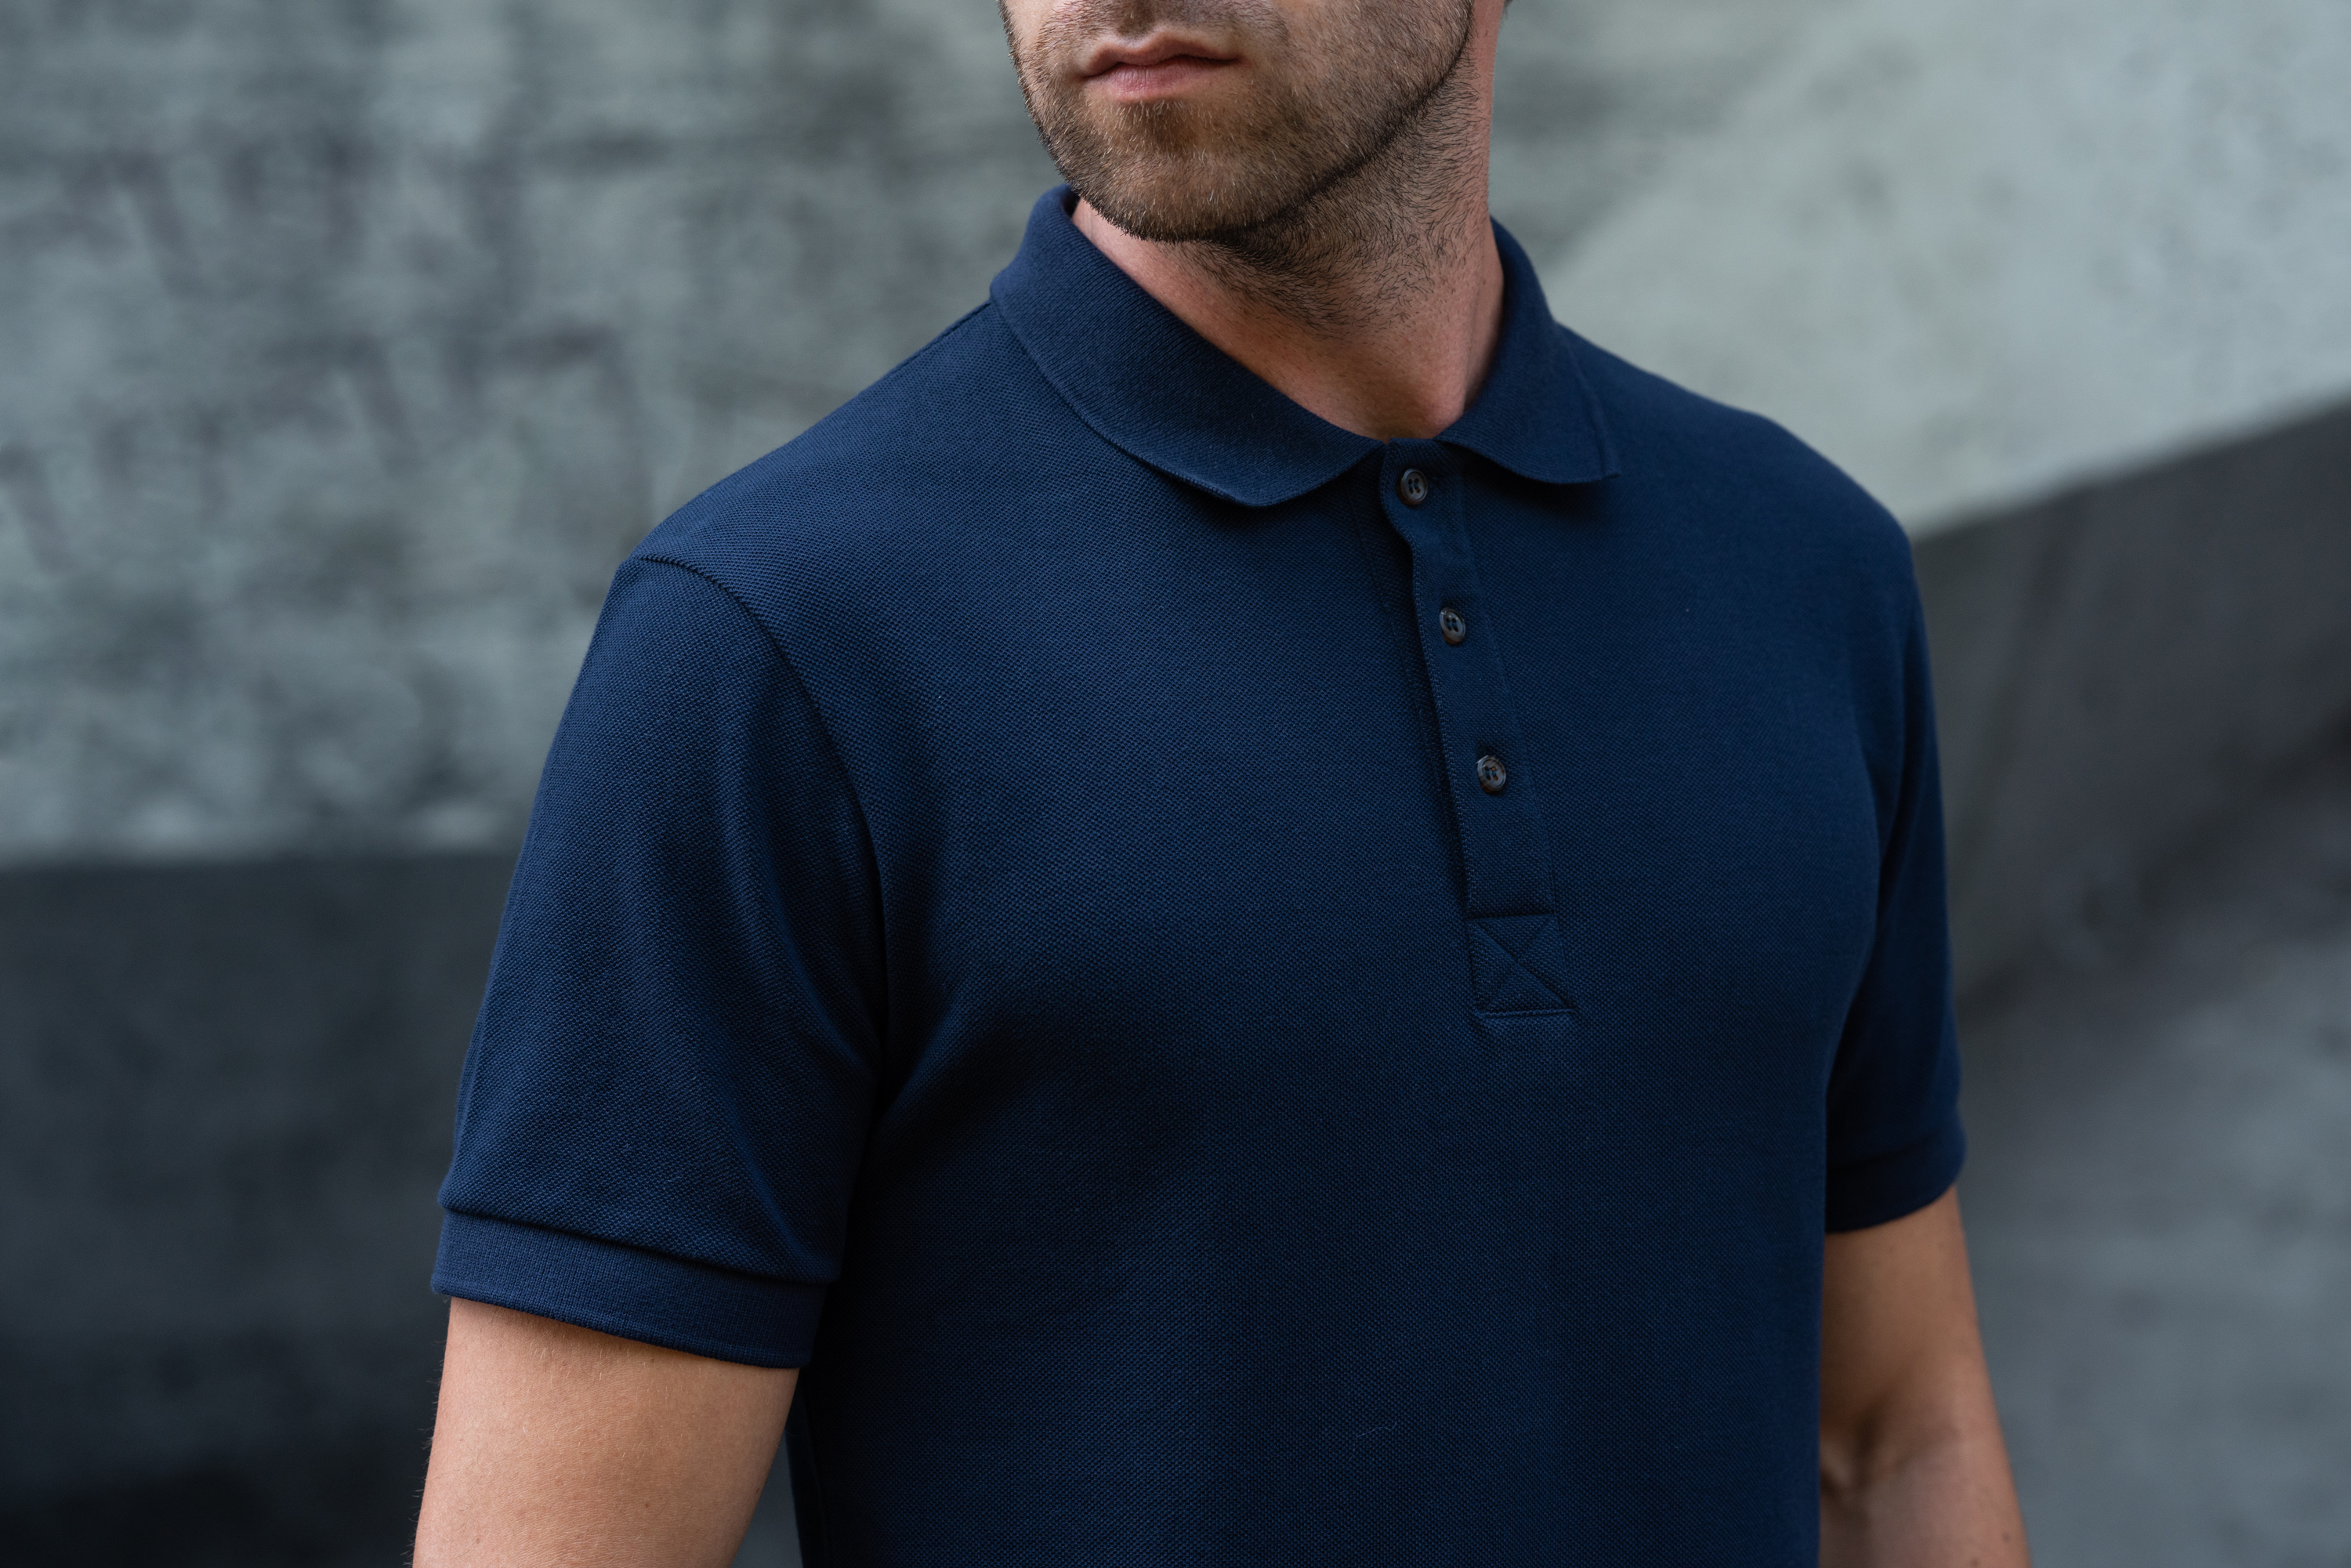 Polo_madeinfrance_frenchaholic_navy-4